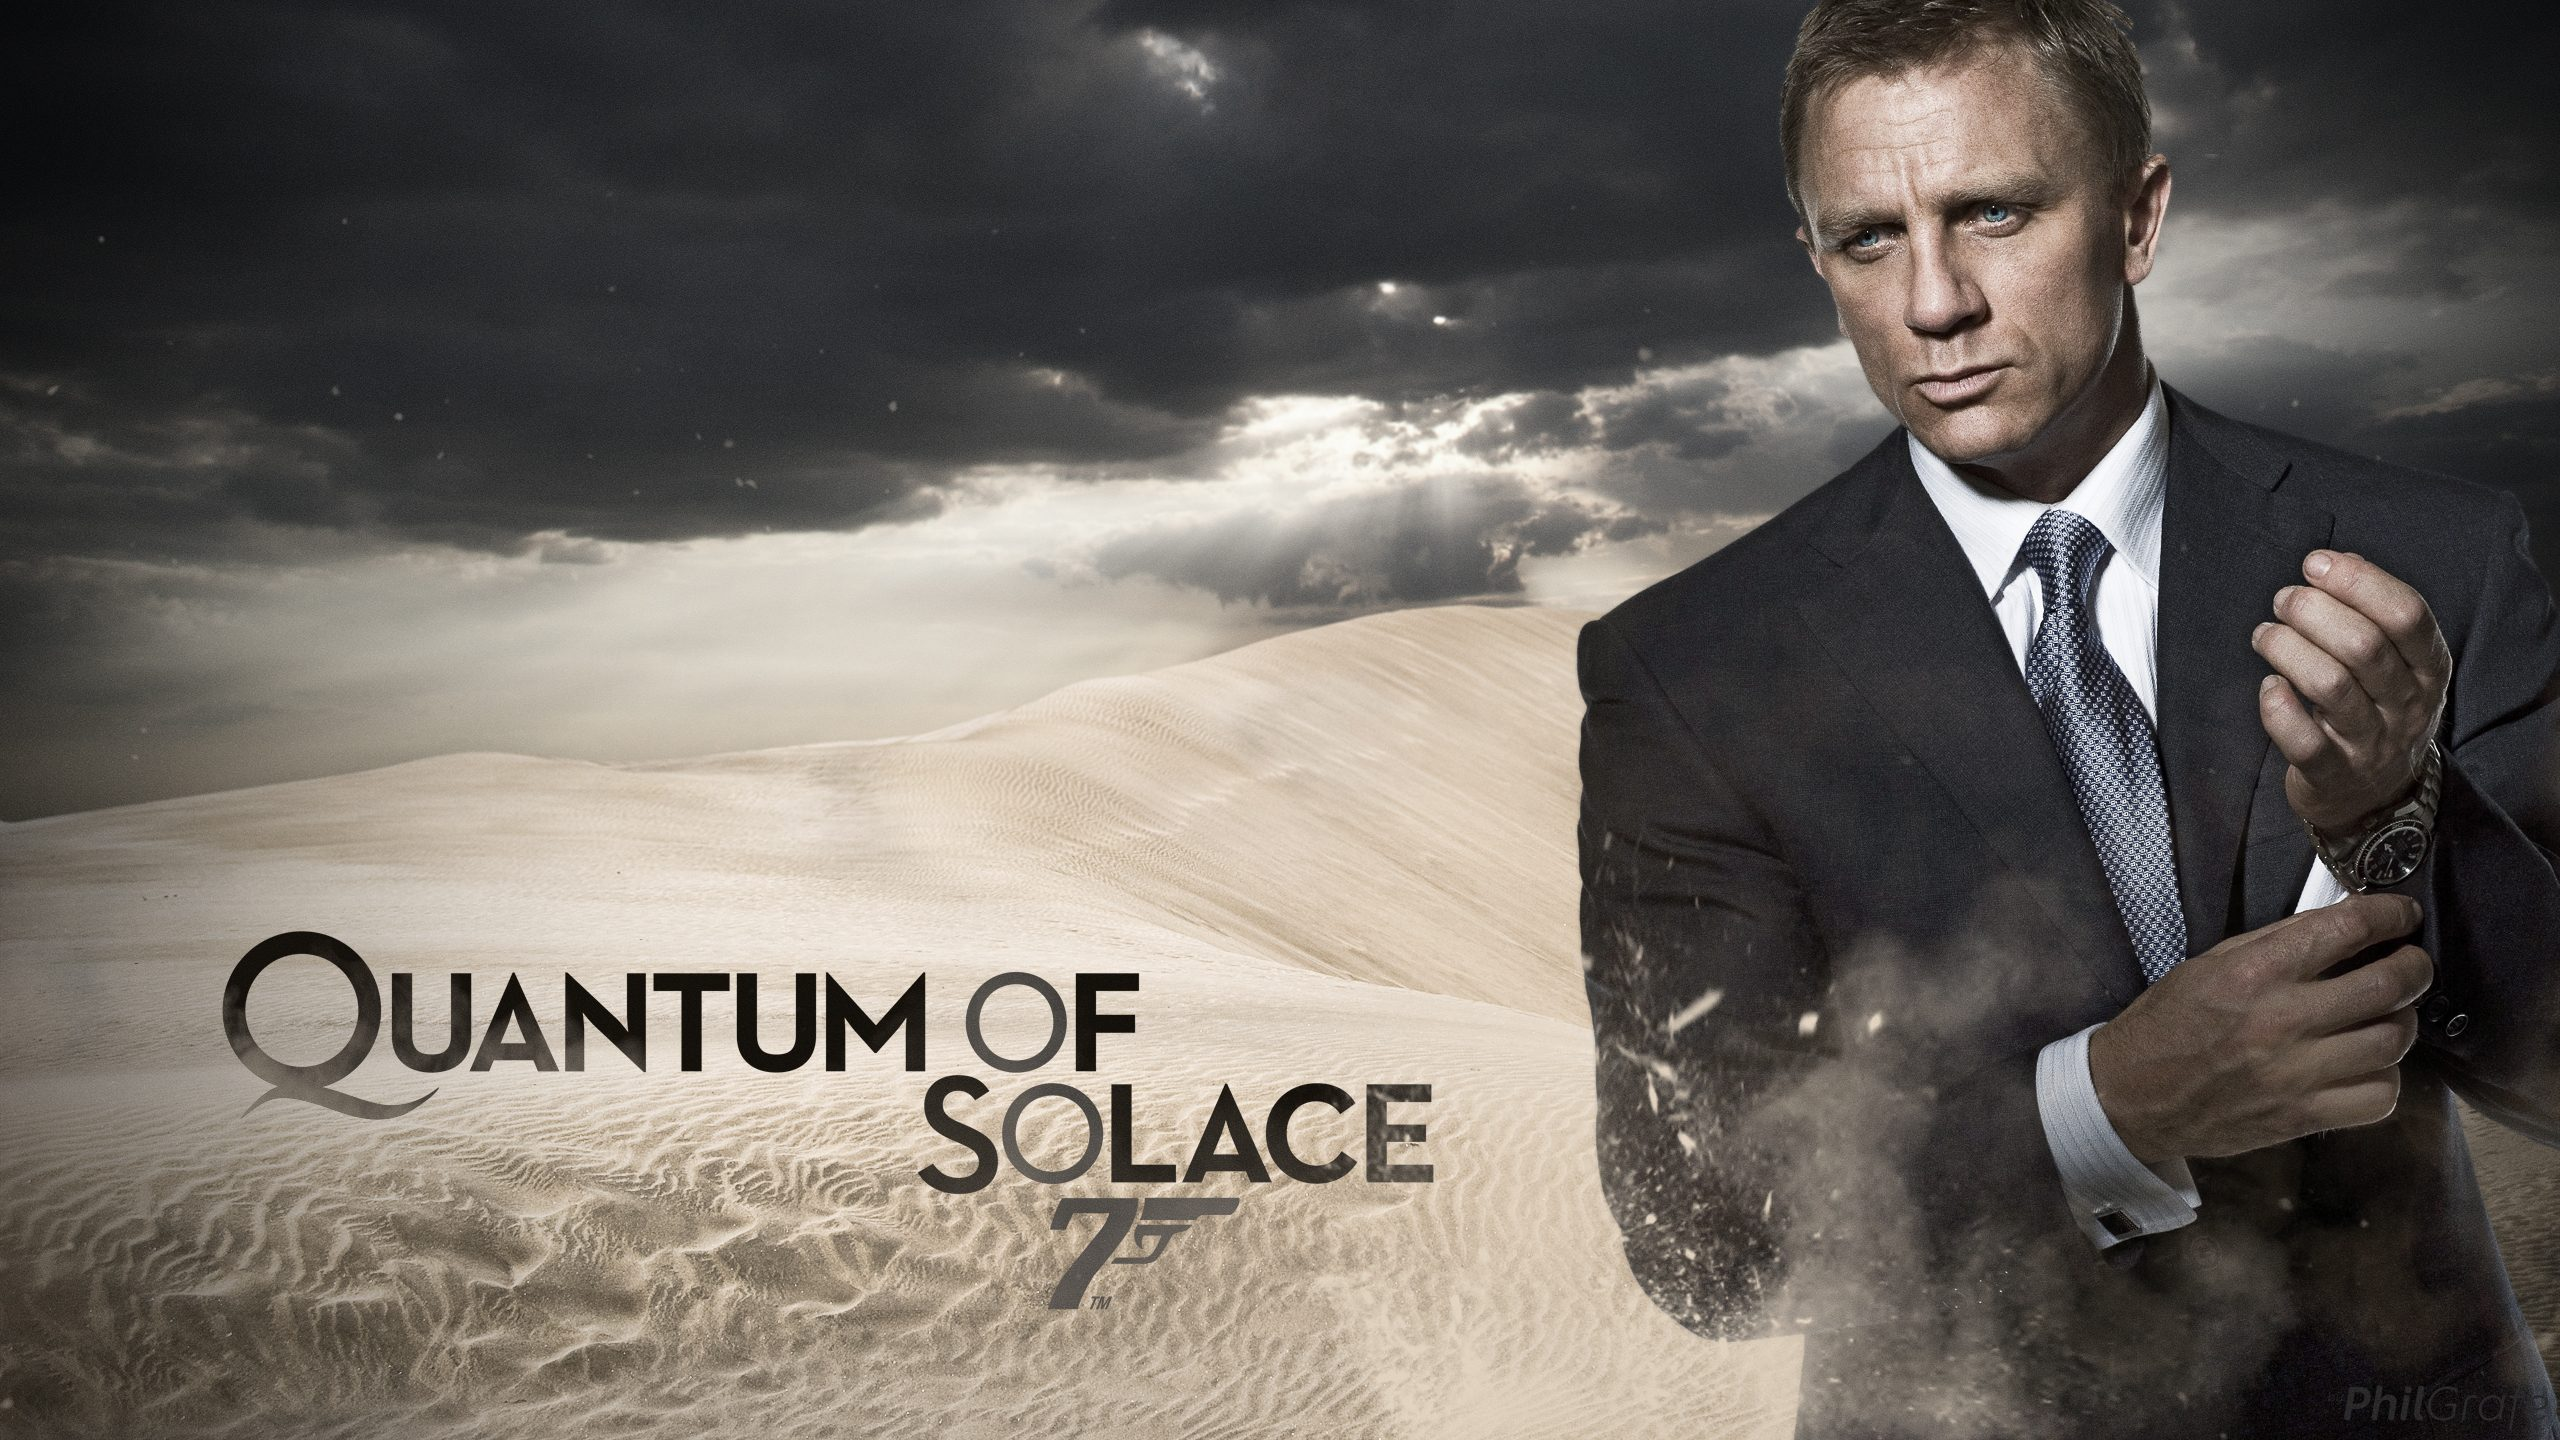 quantum_of_solace_wallpaper_by_guardofazkaban-d41gxp3